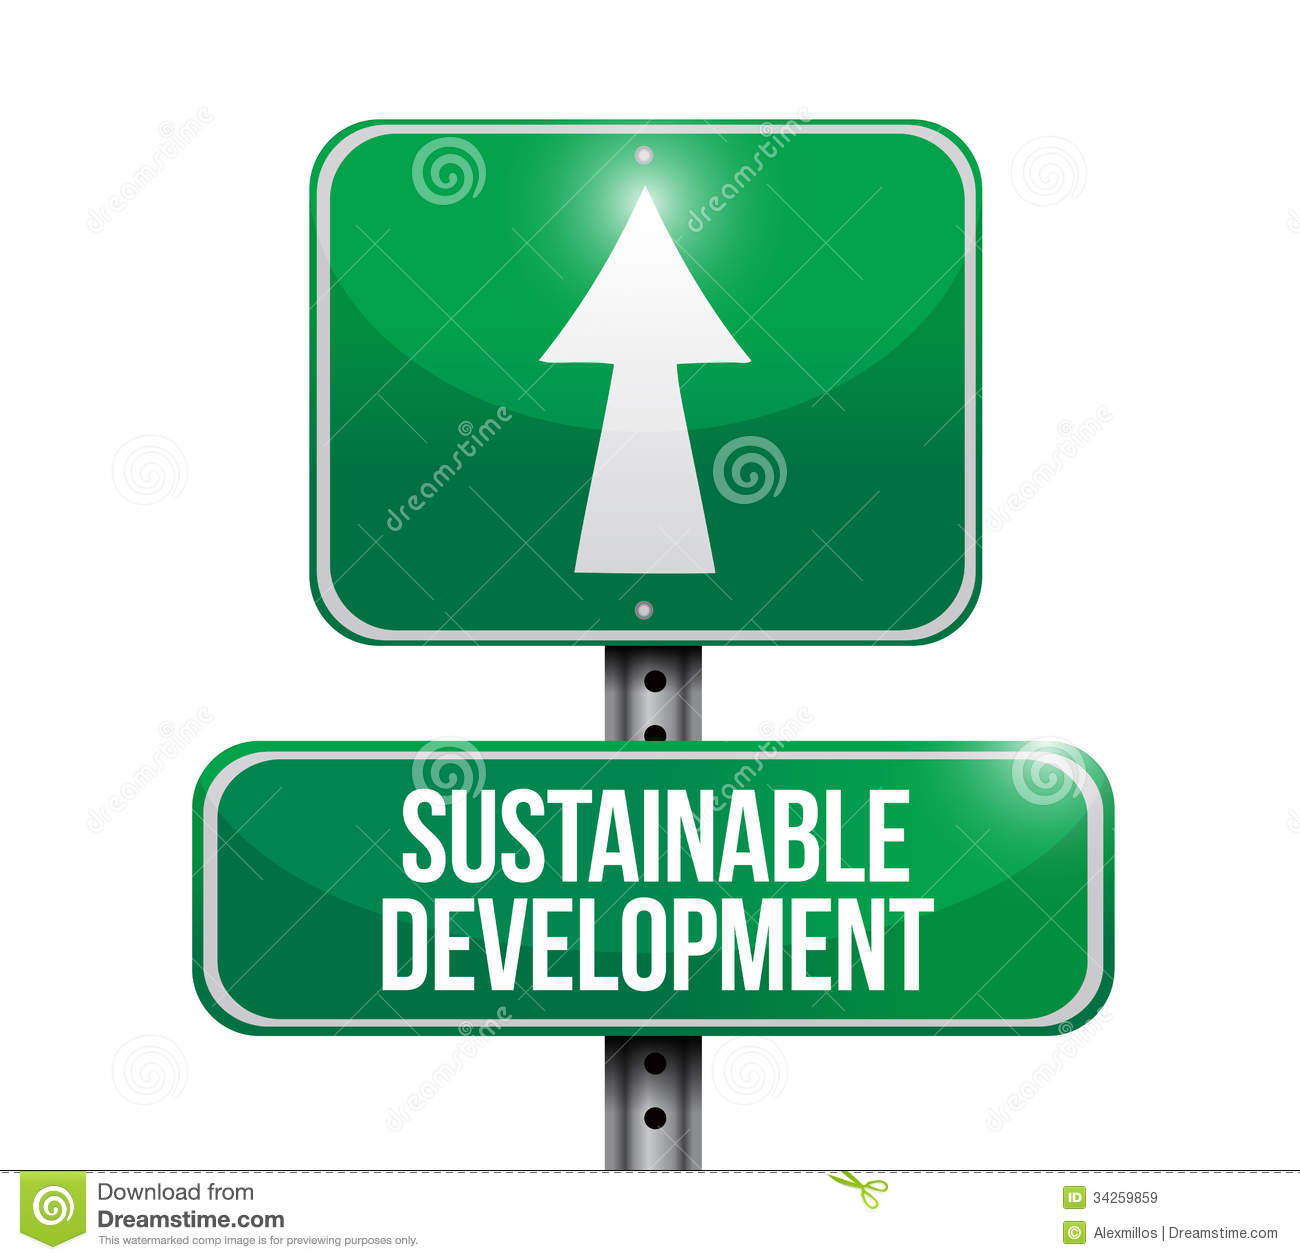 Sustainable development clipart.